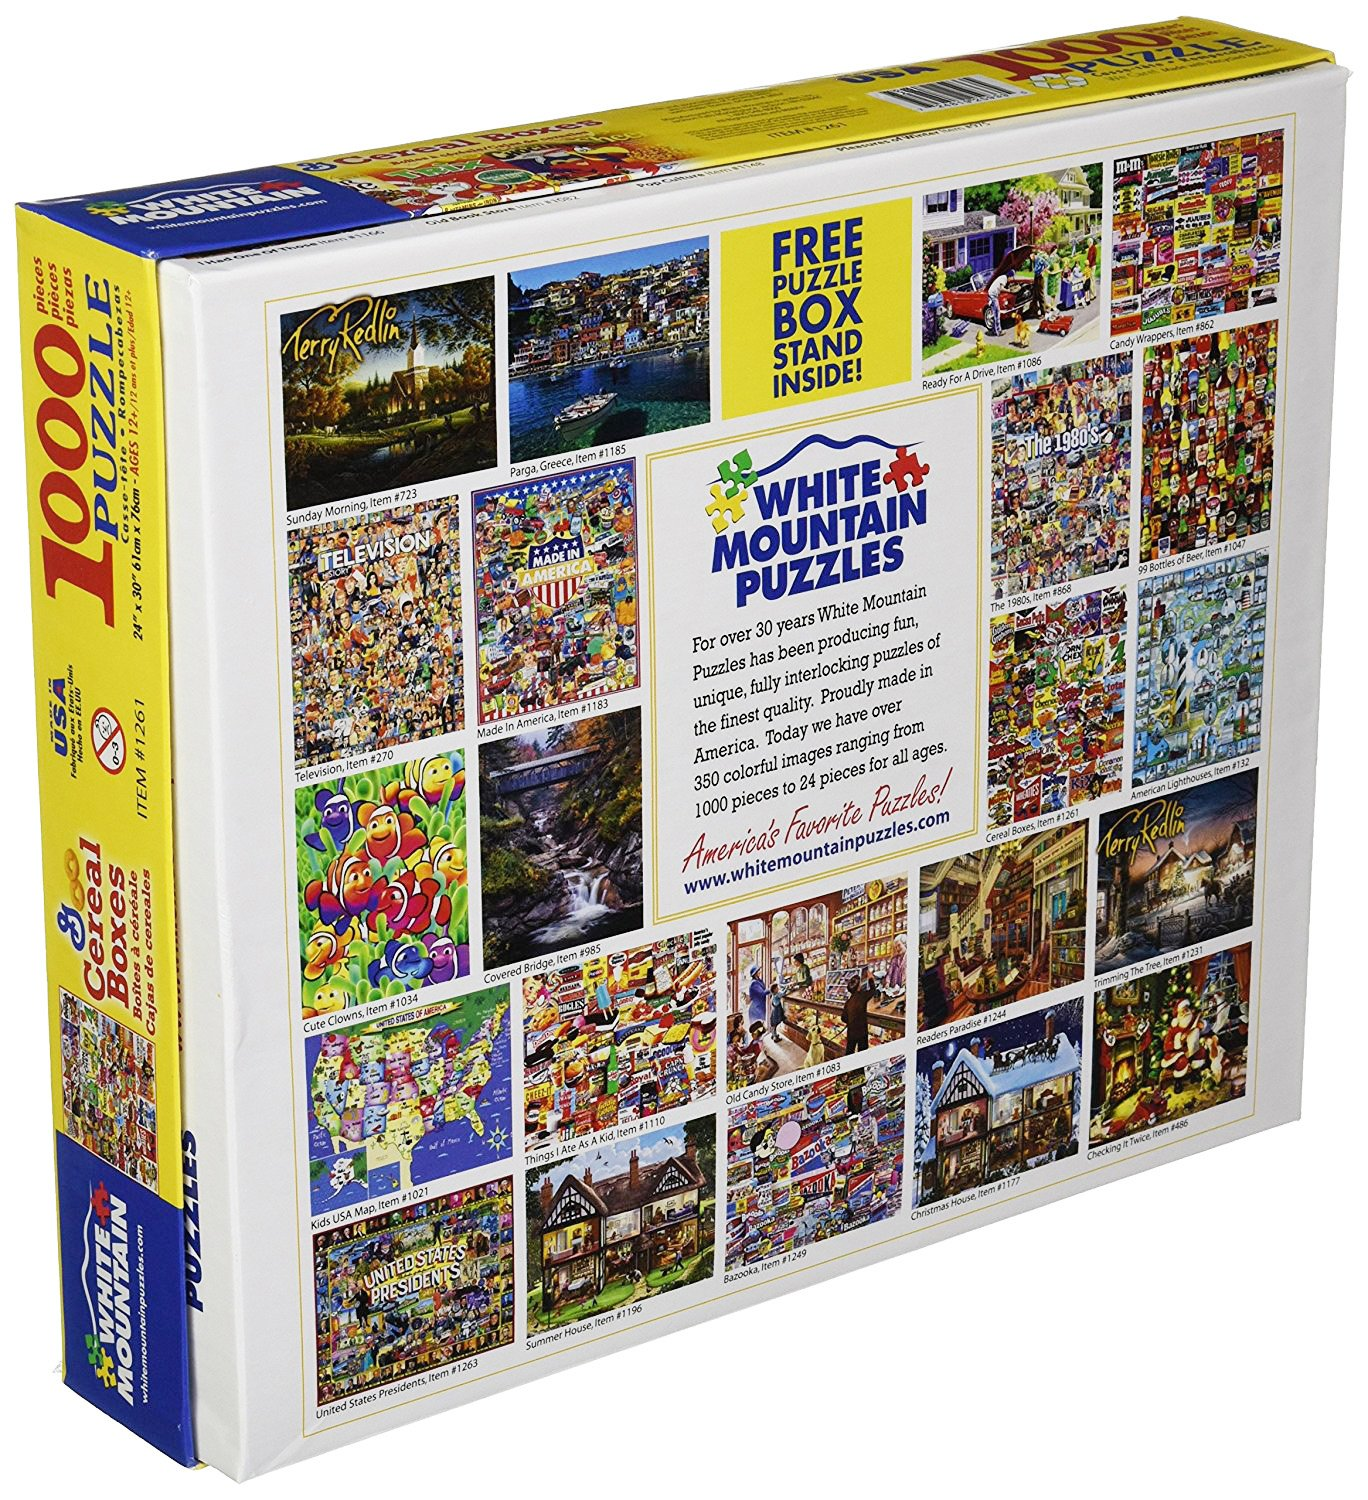 Amazon.com: White Mountain Puzzles Cereal Boxes - 1000 Piece Jigsaw Puzzle: Toys & Games